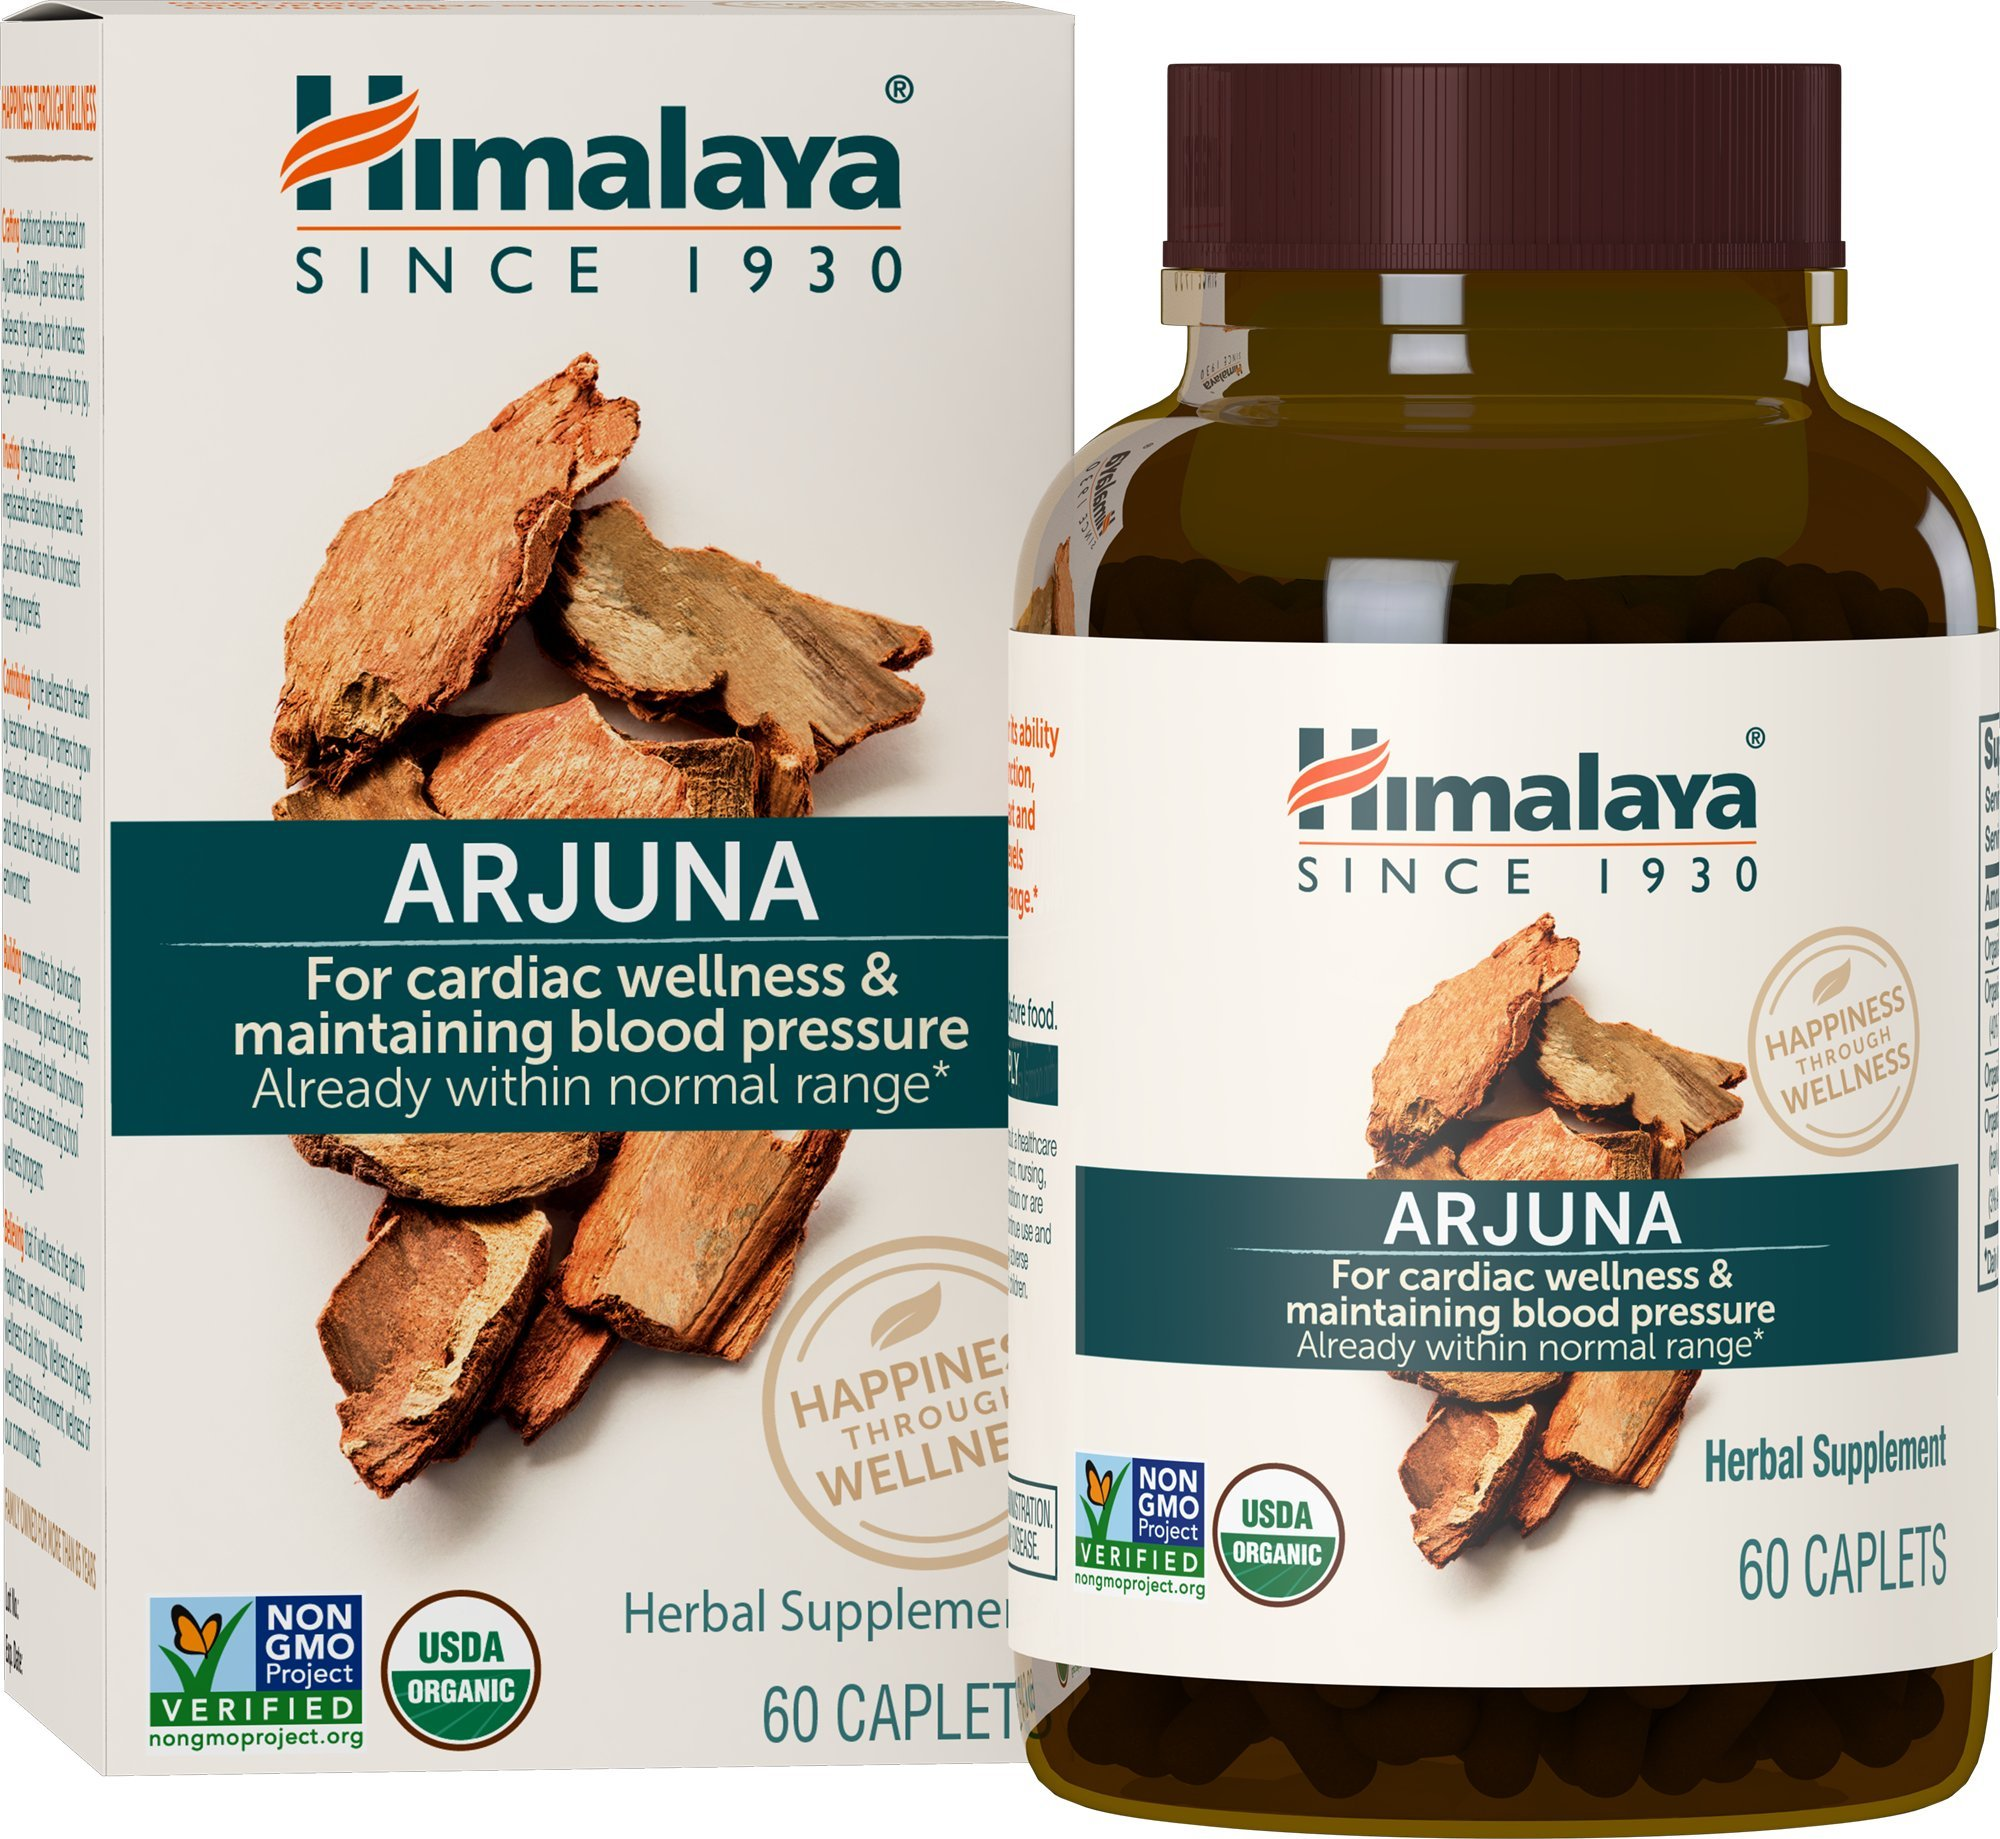 Himalaya Organic Arjuna 60 Caplets for Cholesterol, Blood Pressure & Healthy Heart Function Support 700mg, 2 Month Supply